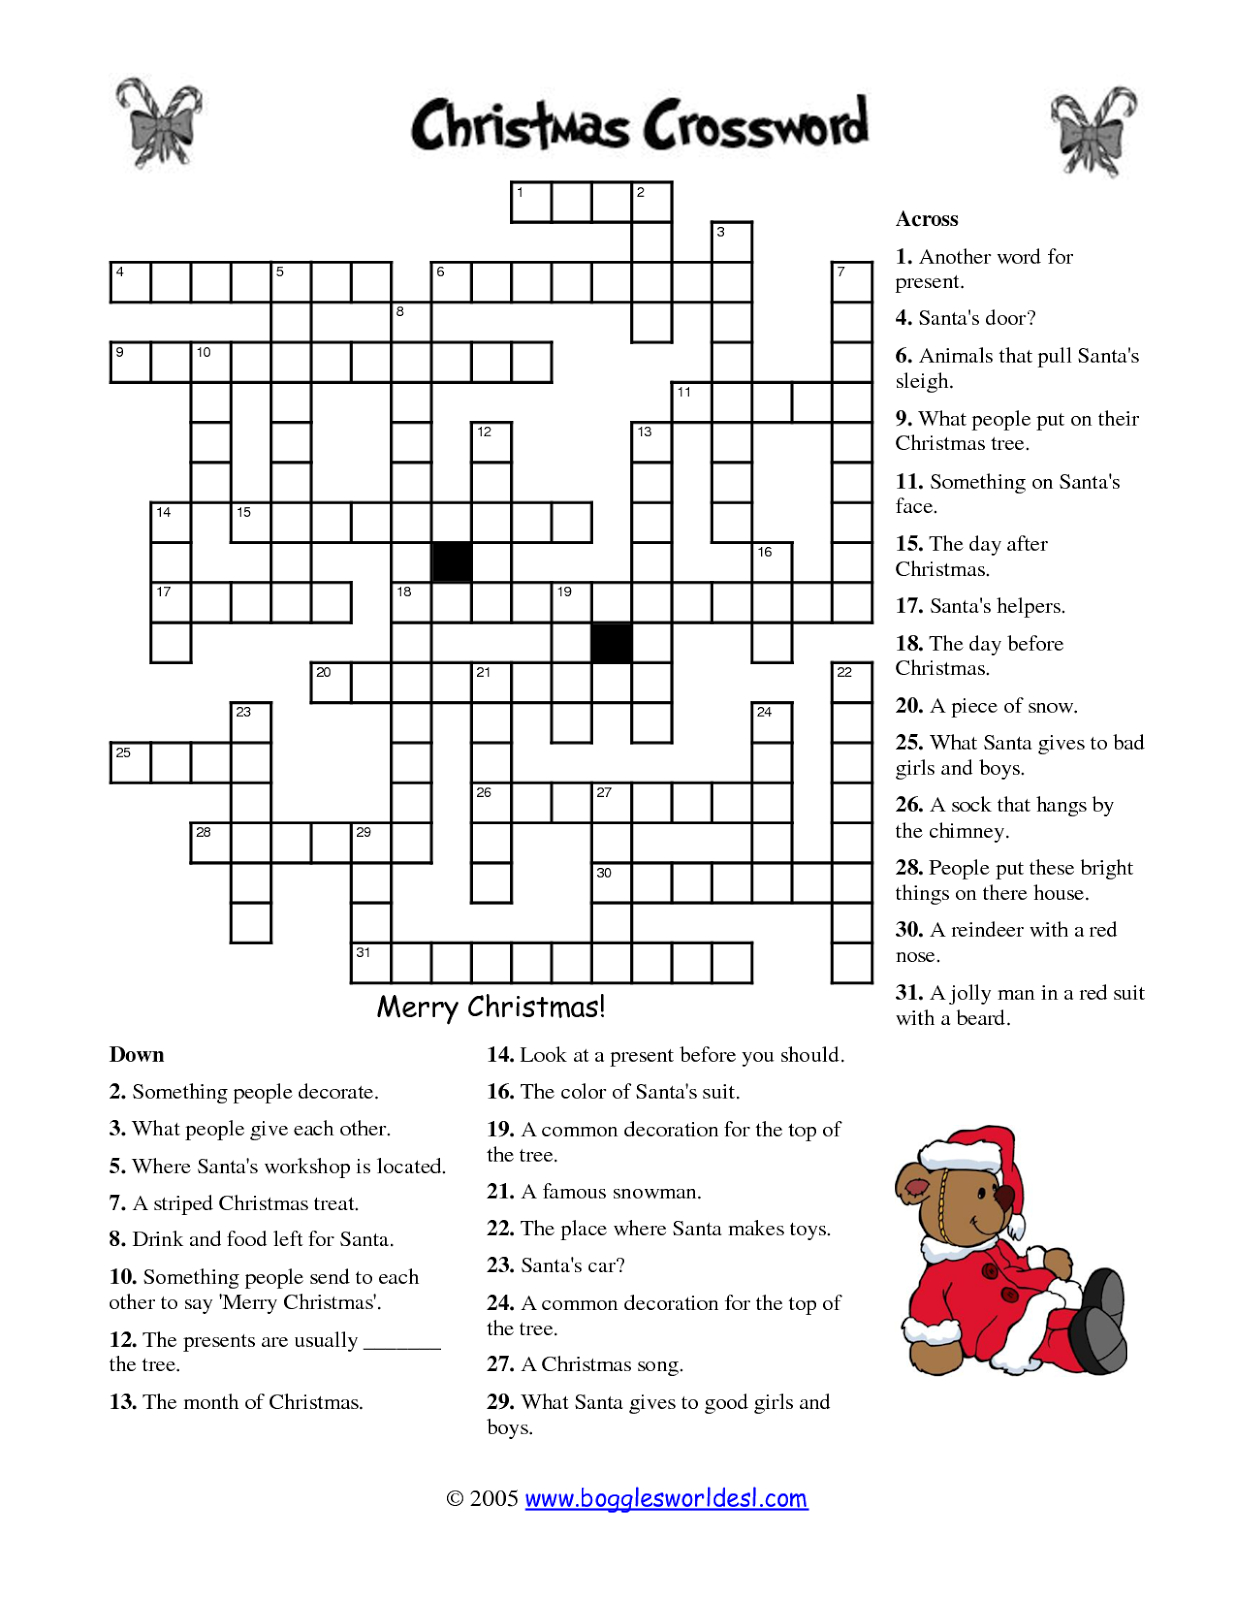 Free Printable Cards: Free Printable Crossword Puzzles | Christmas - Free Printable Christmas Crossword Puzzles For Adults